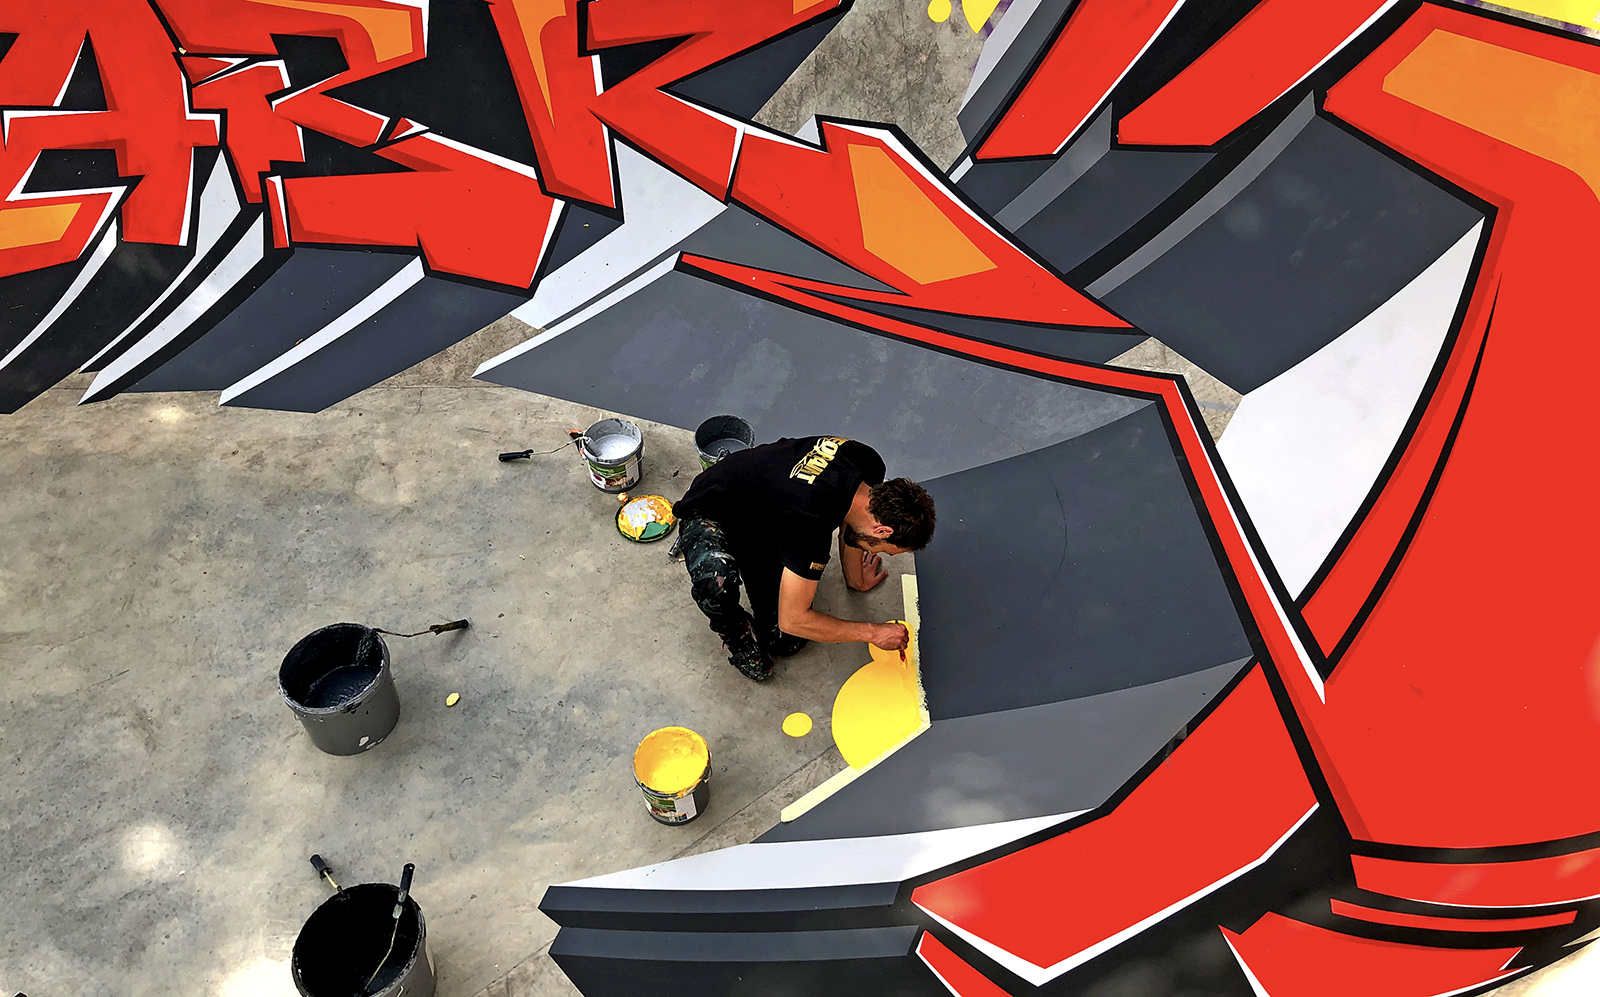 skatepark graffiti - neopaint works